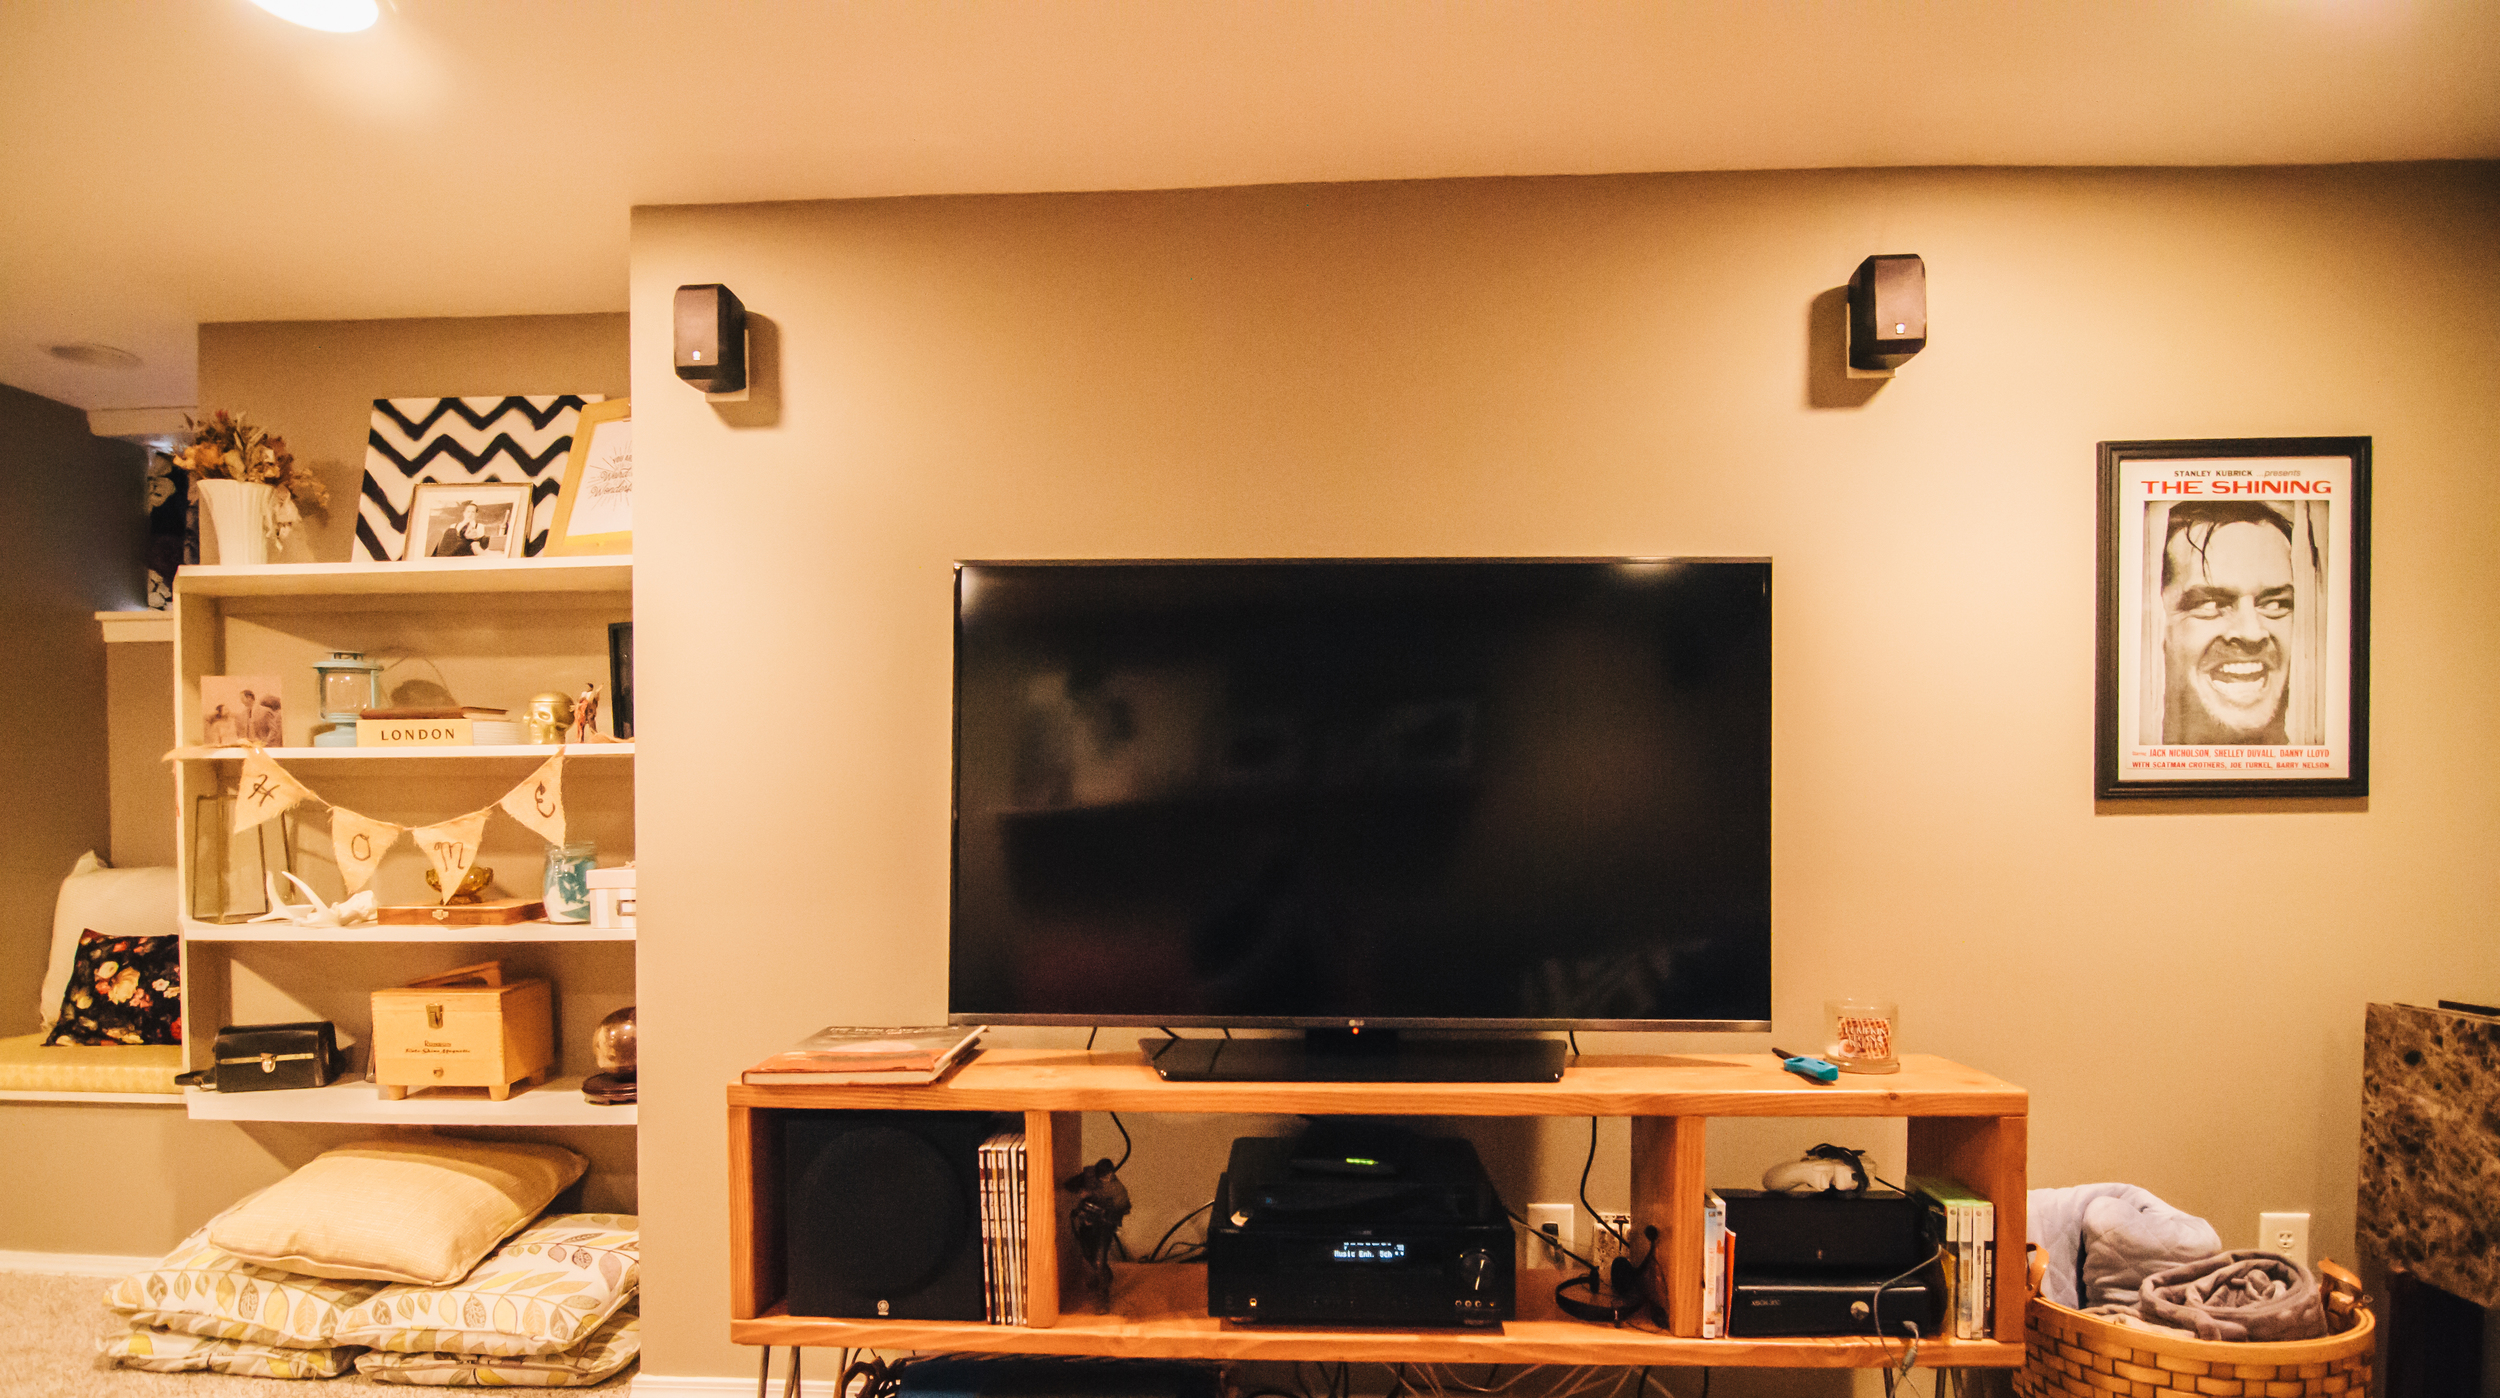 We finally got all the surround sound hooked up, thanks to the people before us for getting it all put together, and finally got a real TV!